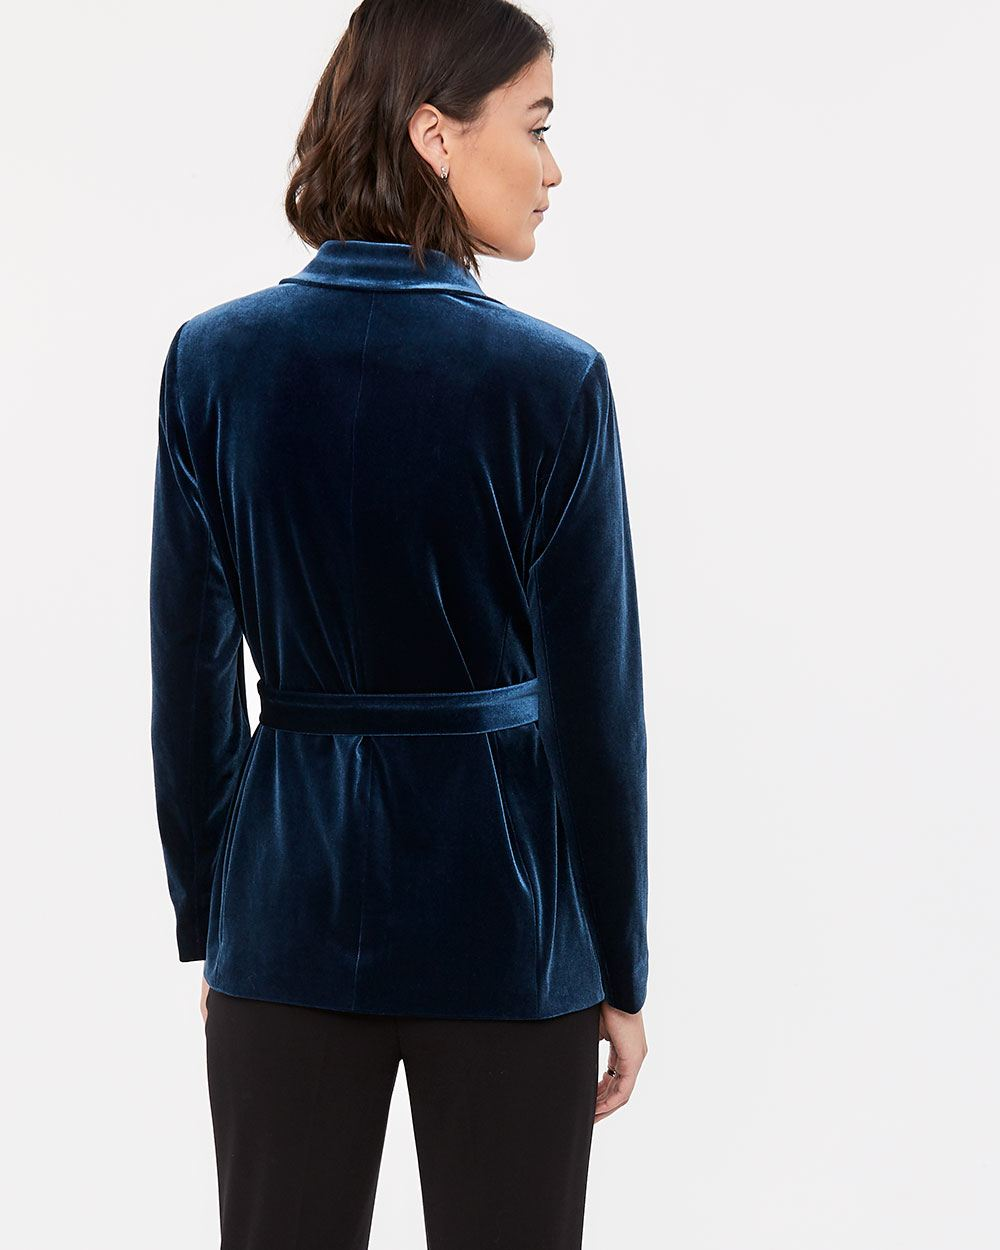 Velvet Blazer with Sash